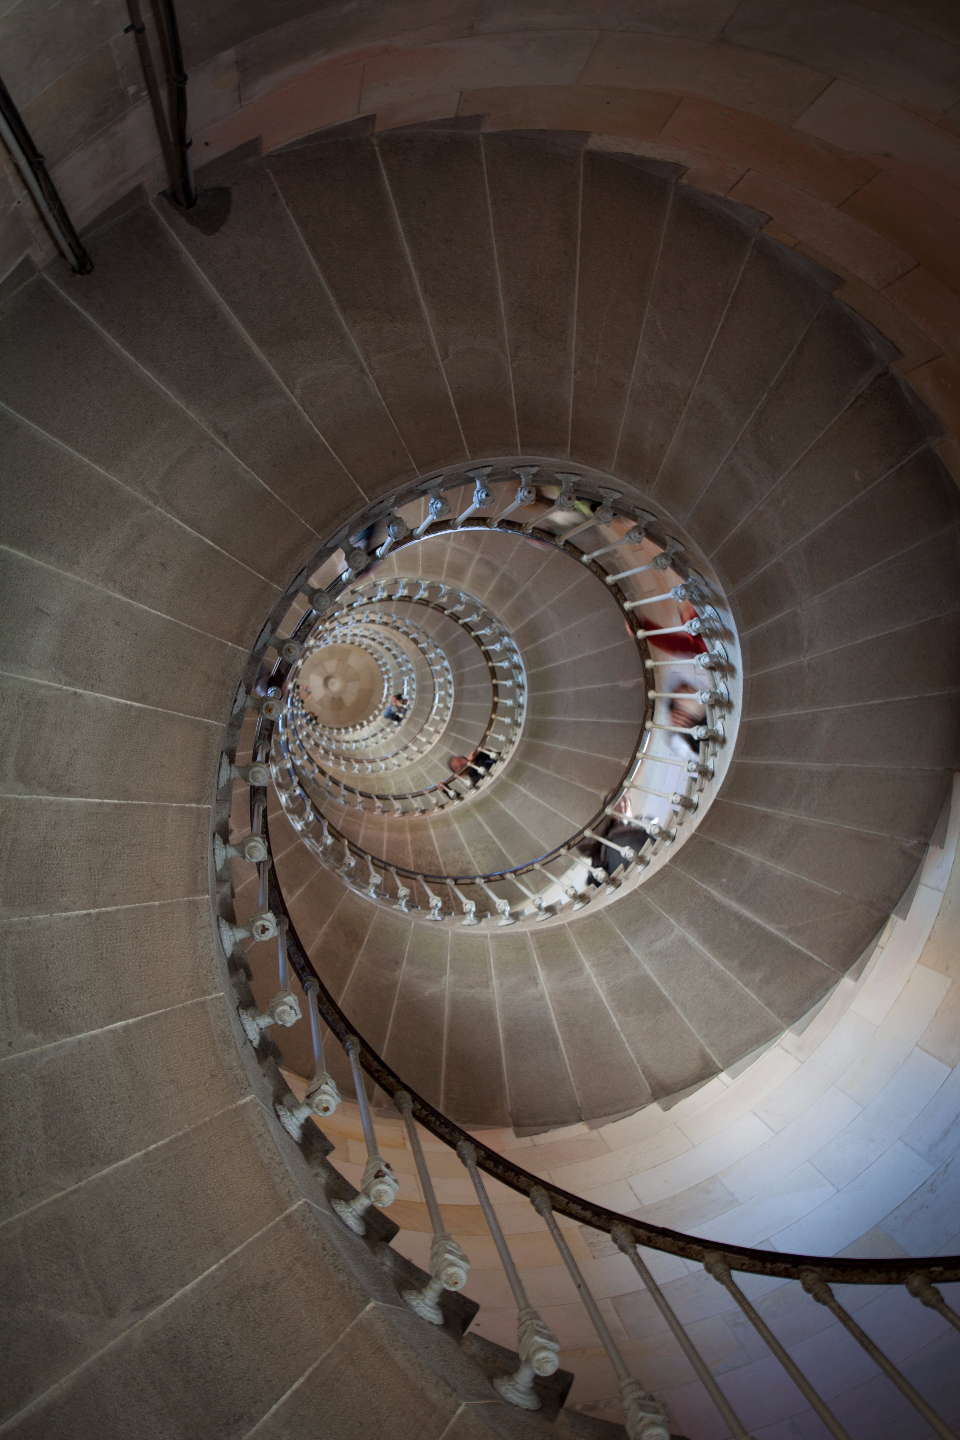 stairs dizzy round circle lighthouse spiral building architecture